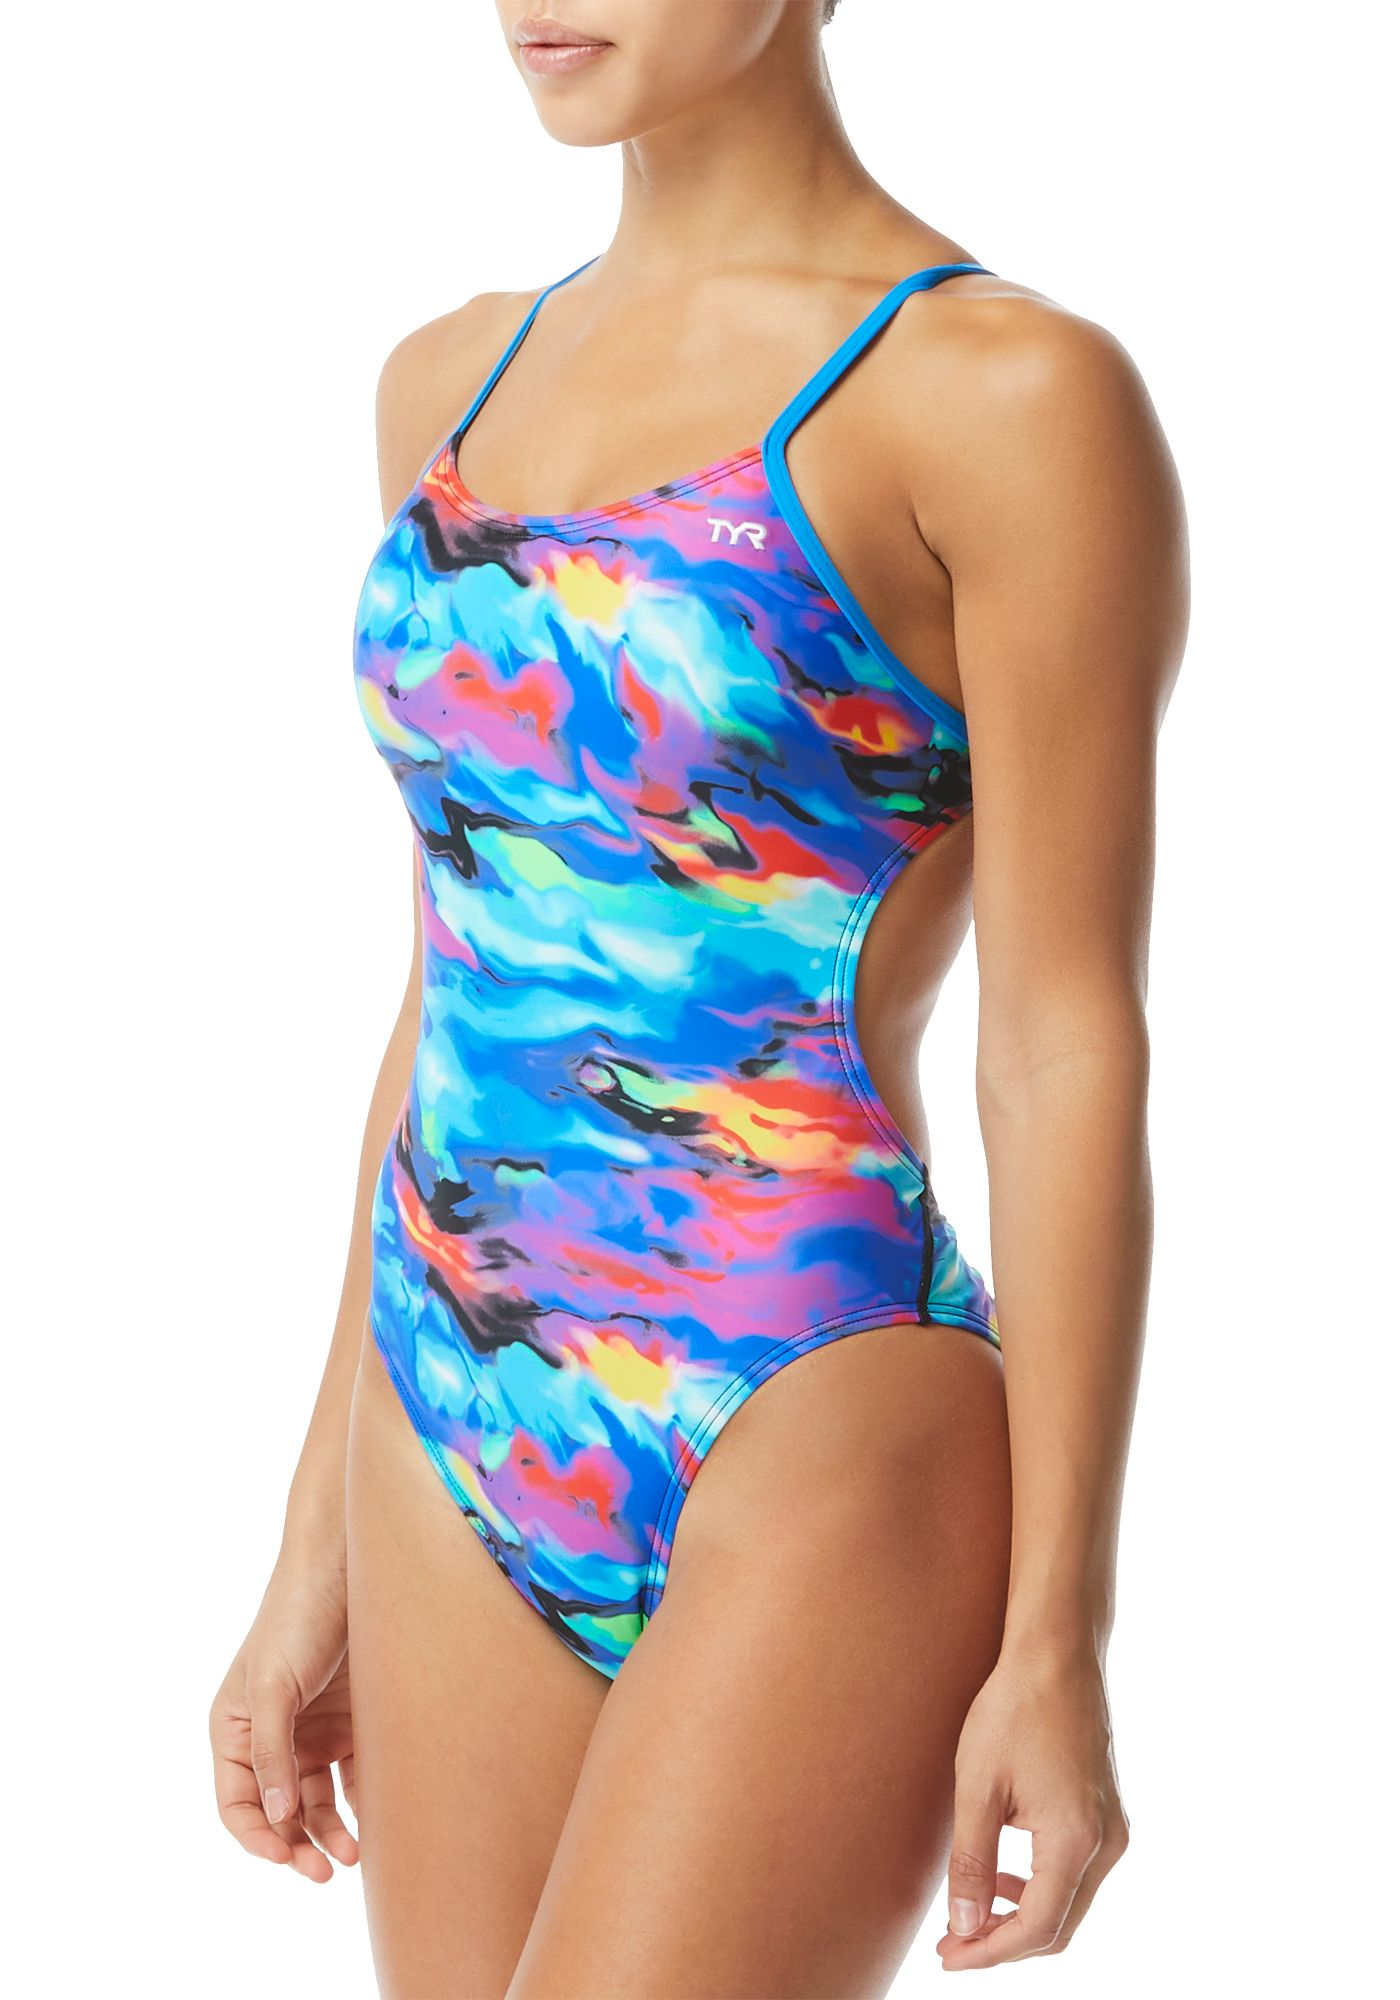 TYR Women's Synthesis Cutoutfit One Piece Swimsuit